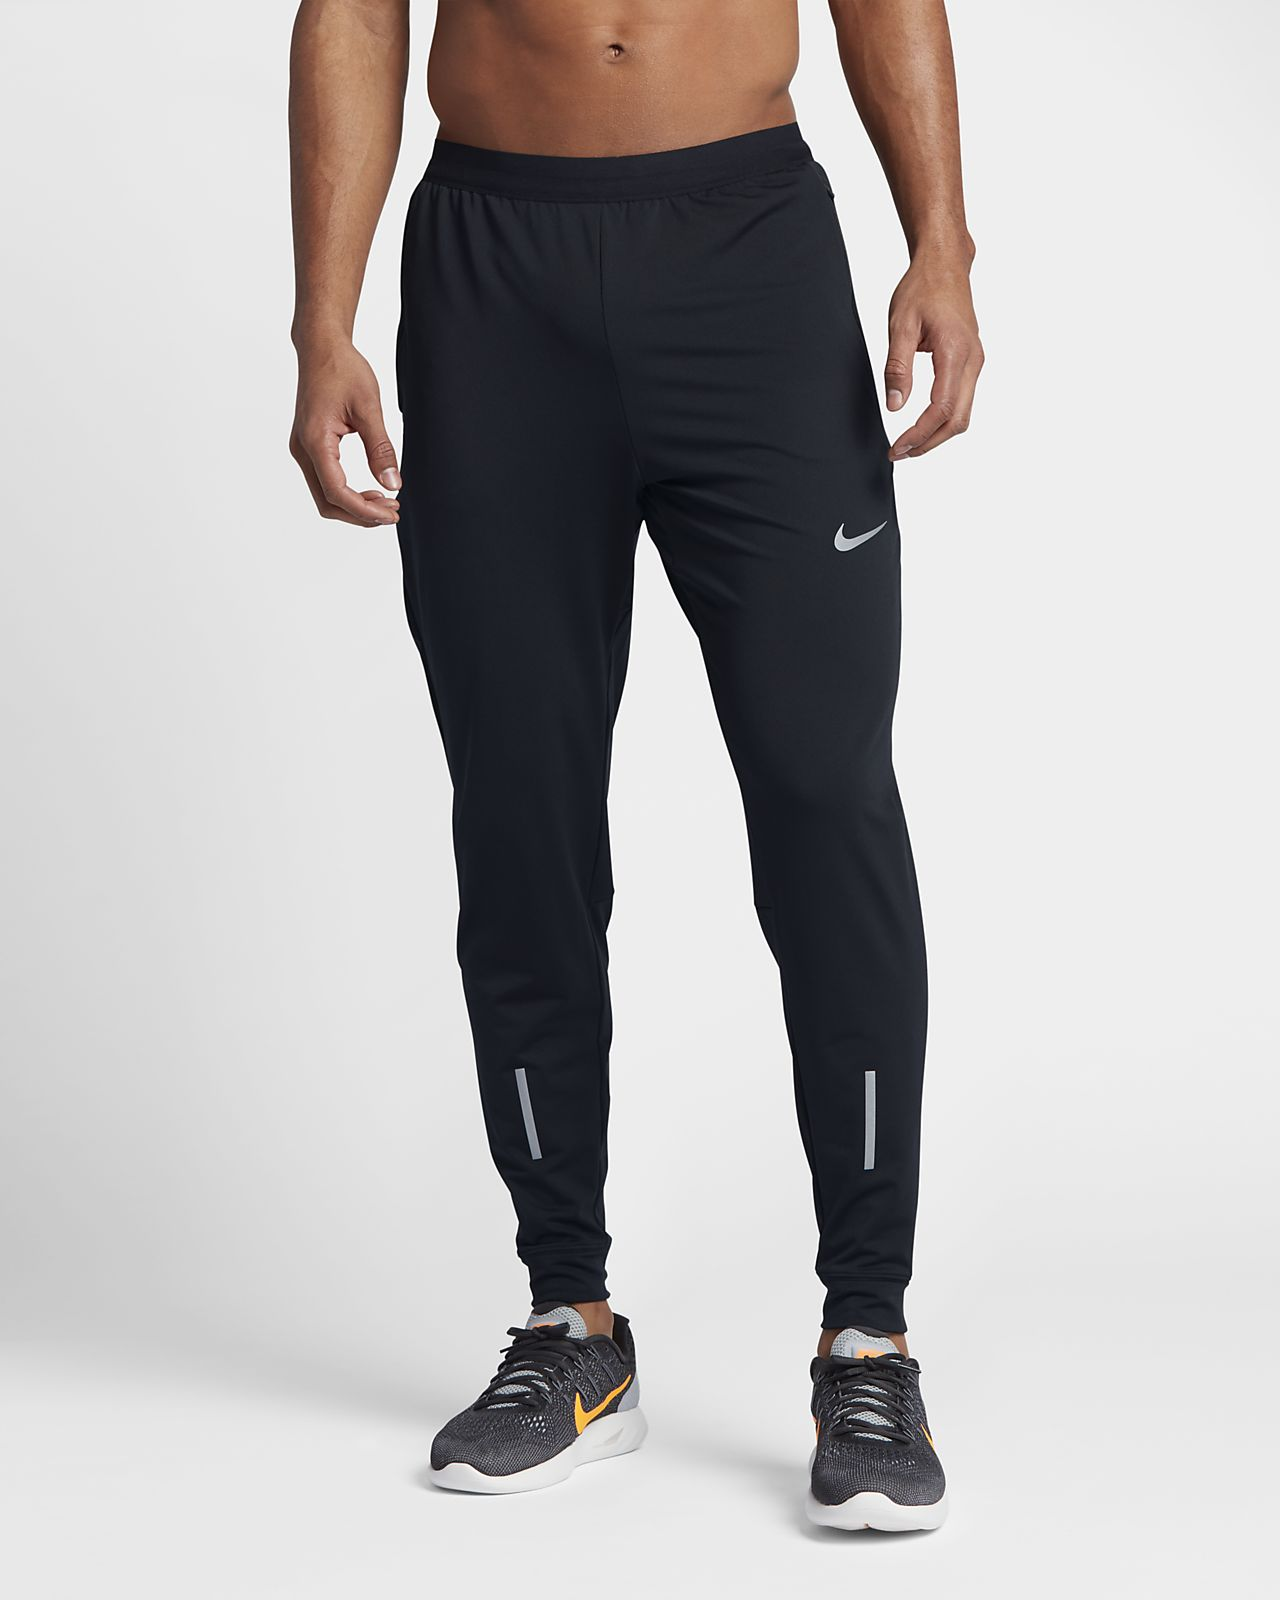 Men's Nike Dri-FIT Shield - Running Pants HS182339g